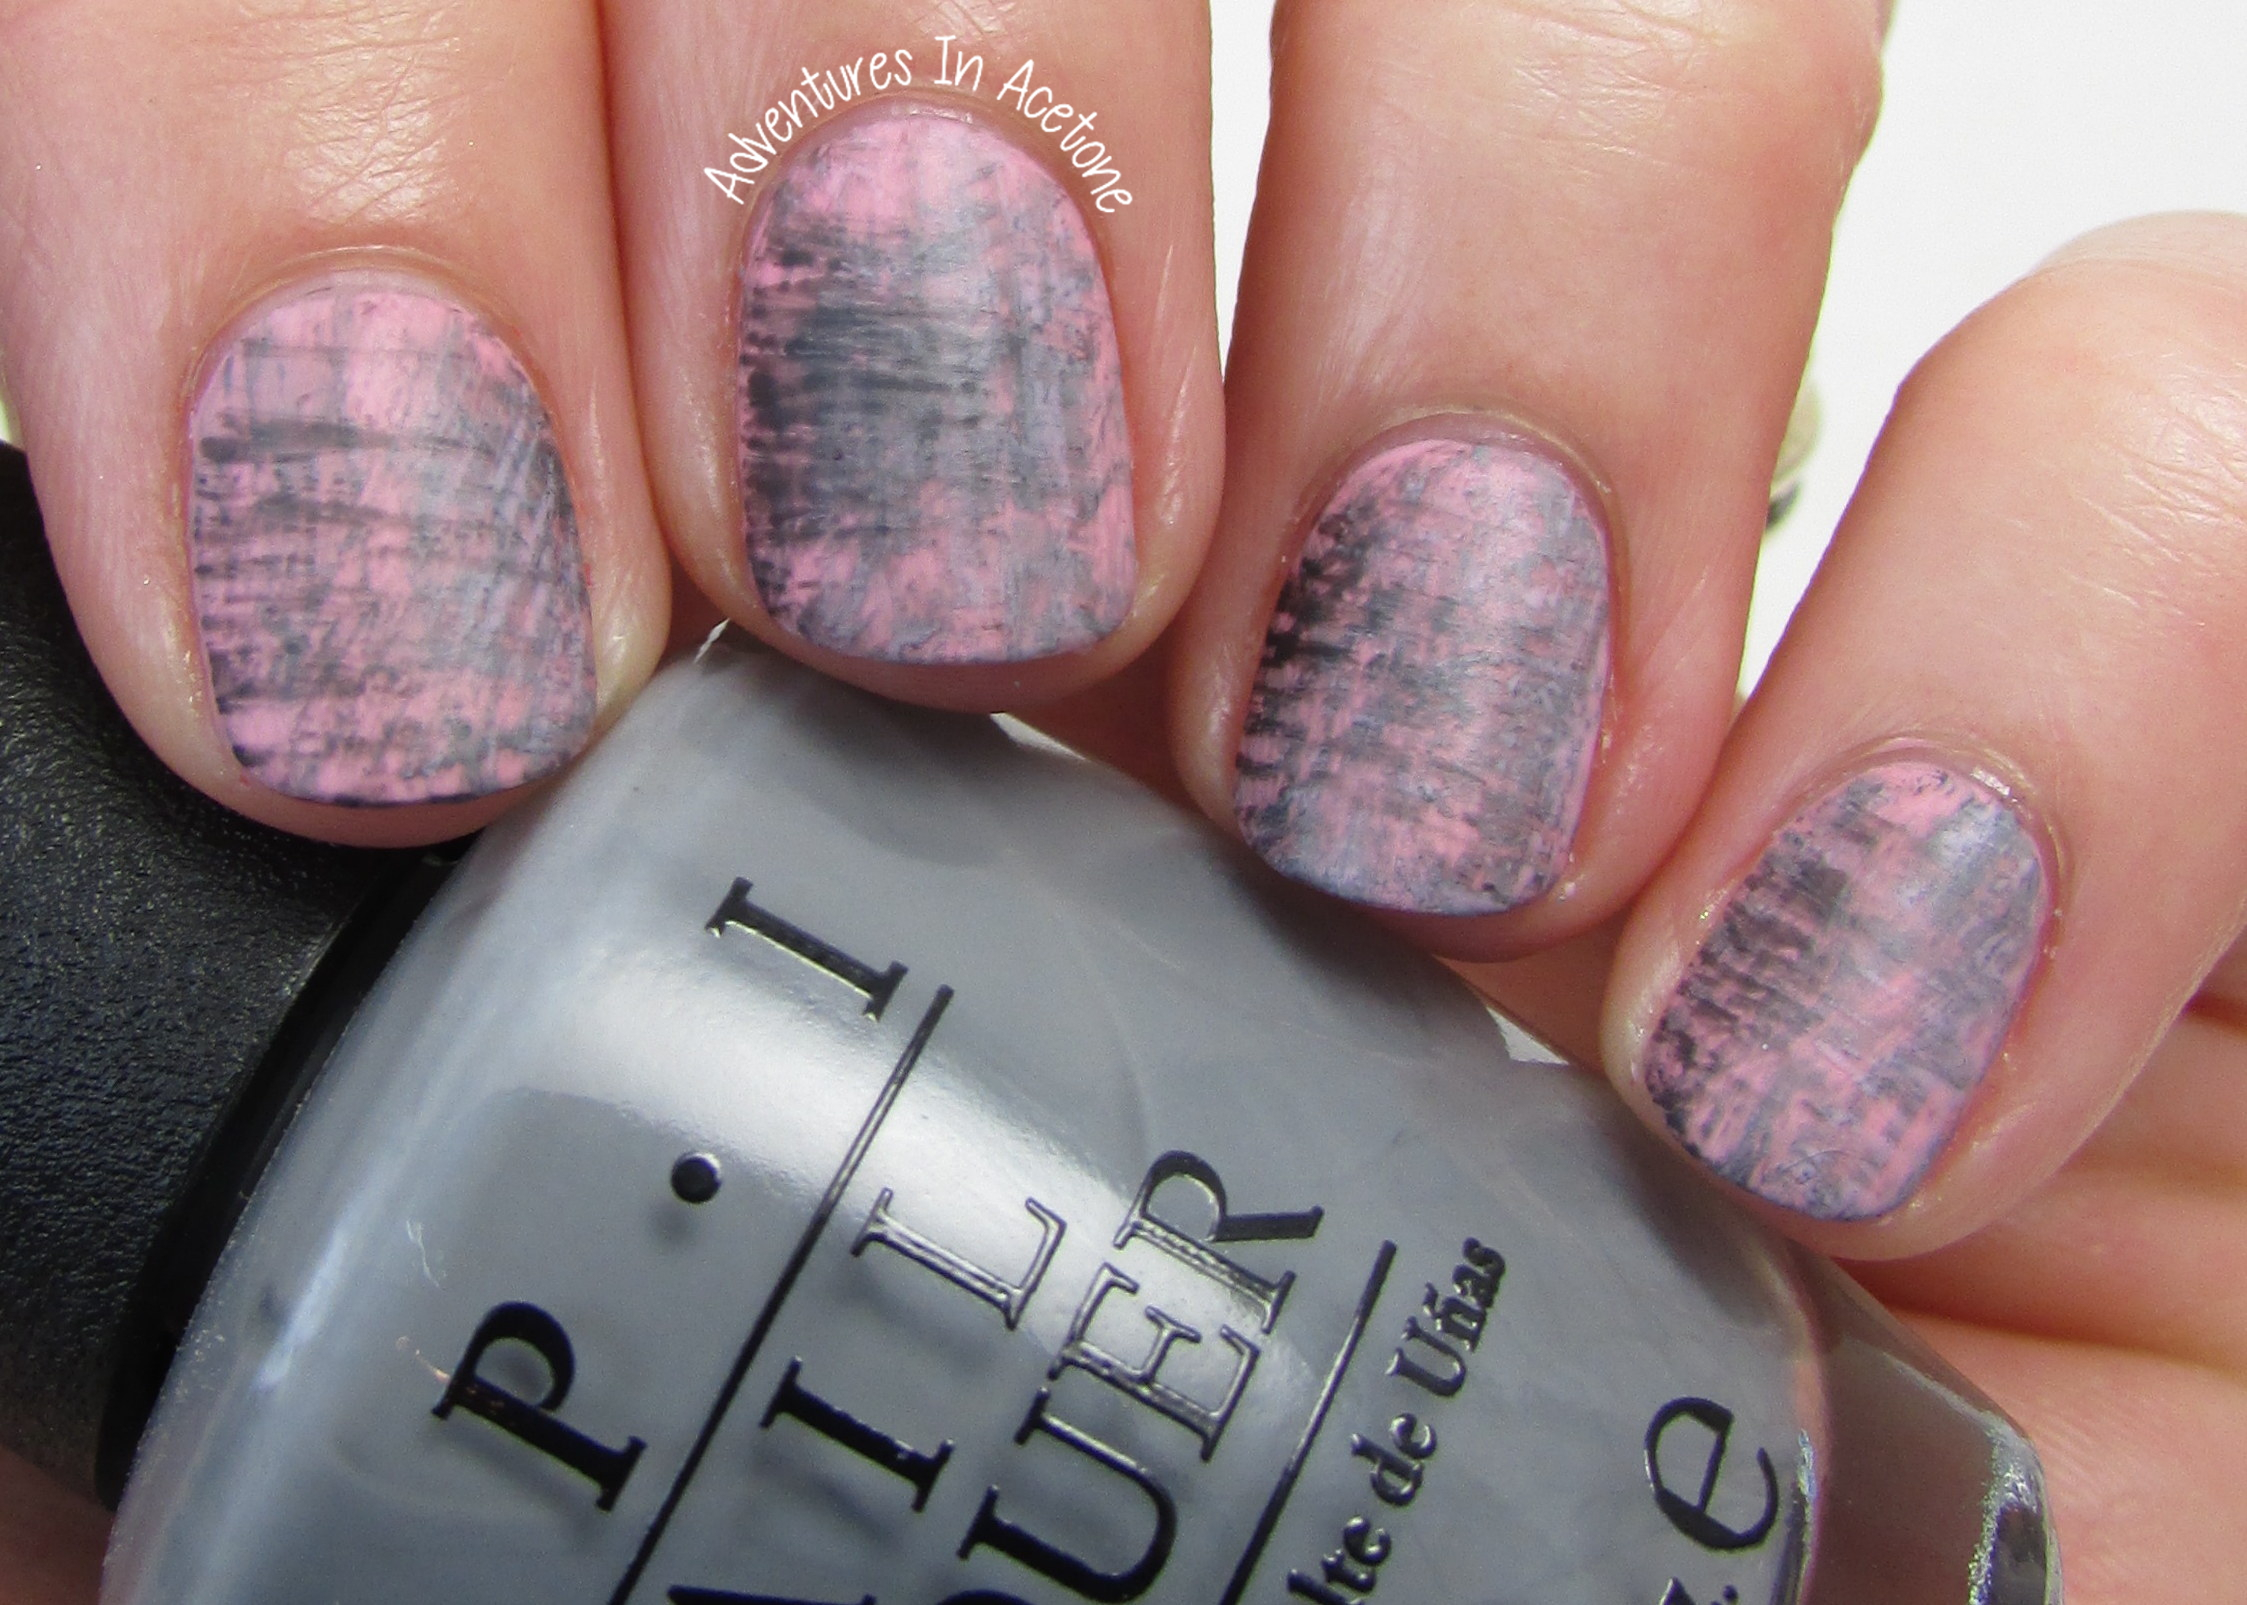 40 great nail art ideas grey color pink and grey fanbrush nail pink and gray fan brush nail art 1 prinsesfo Image collections